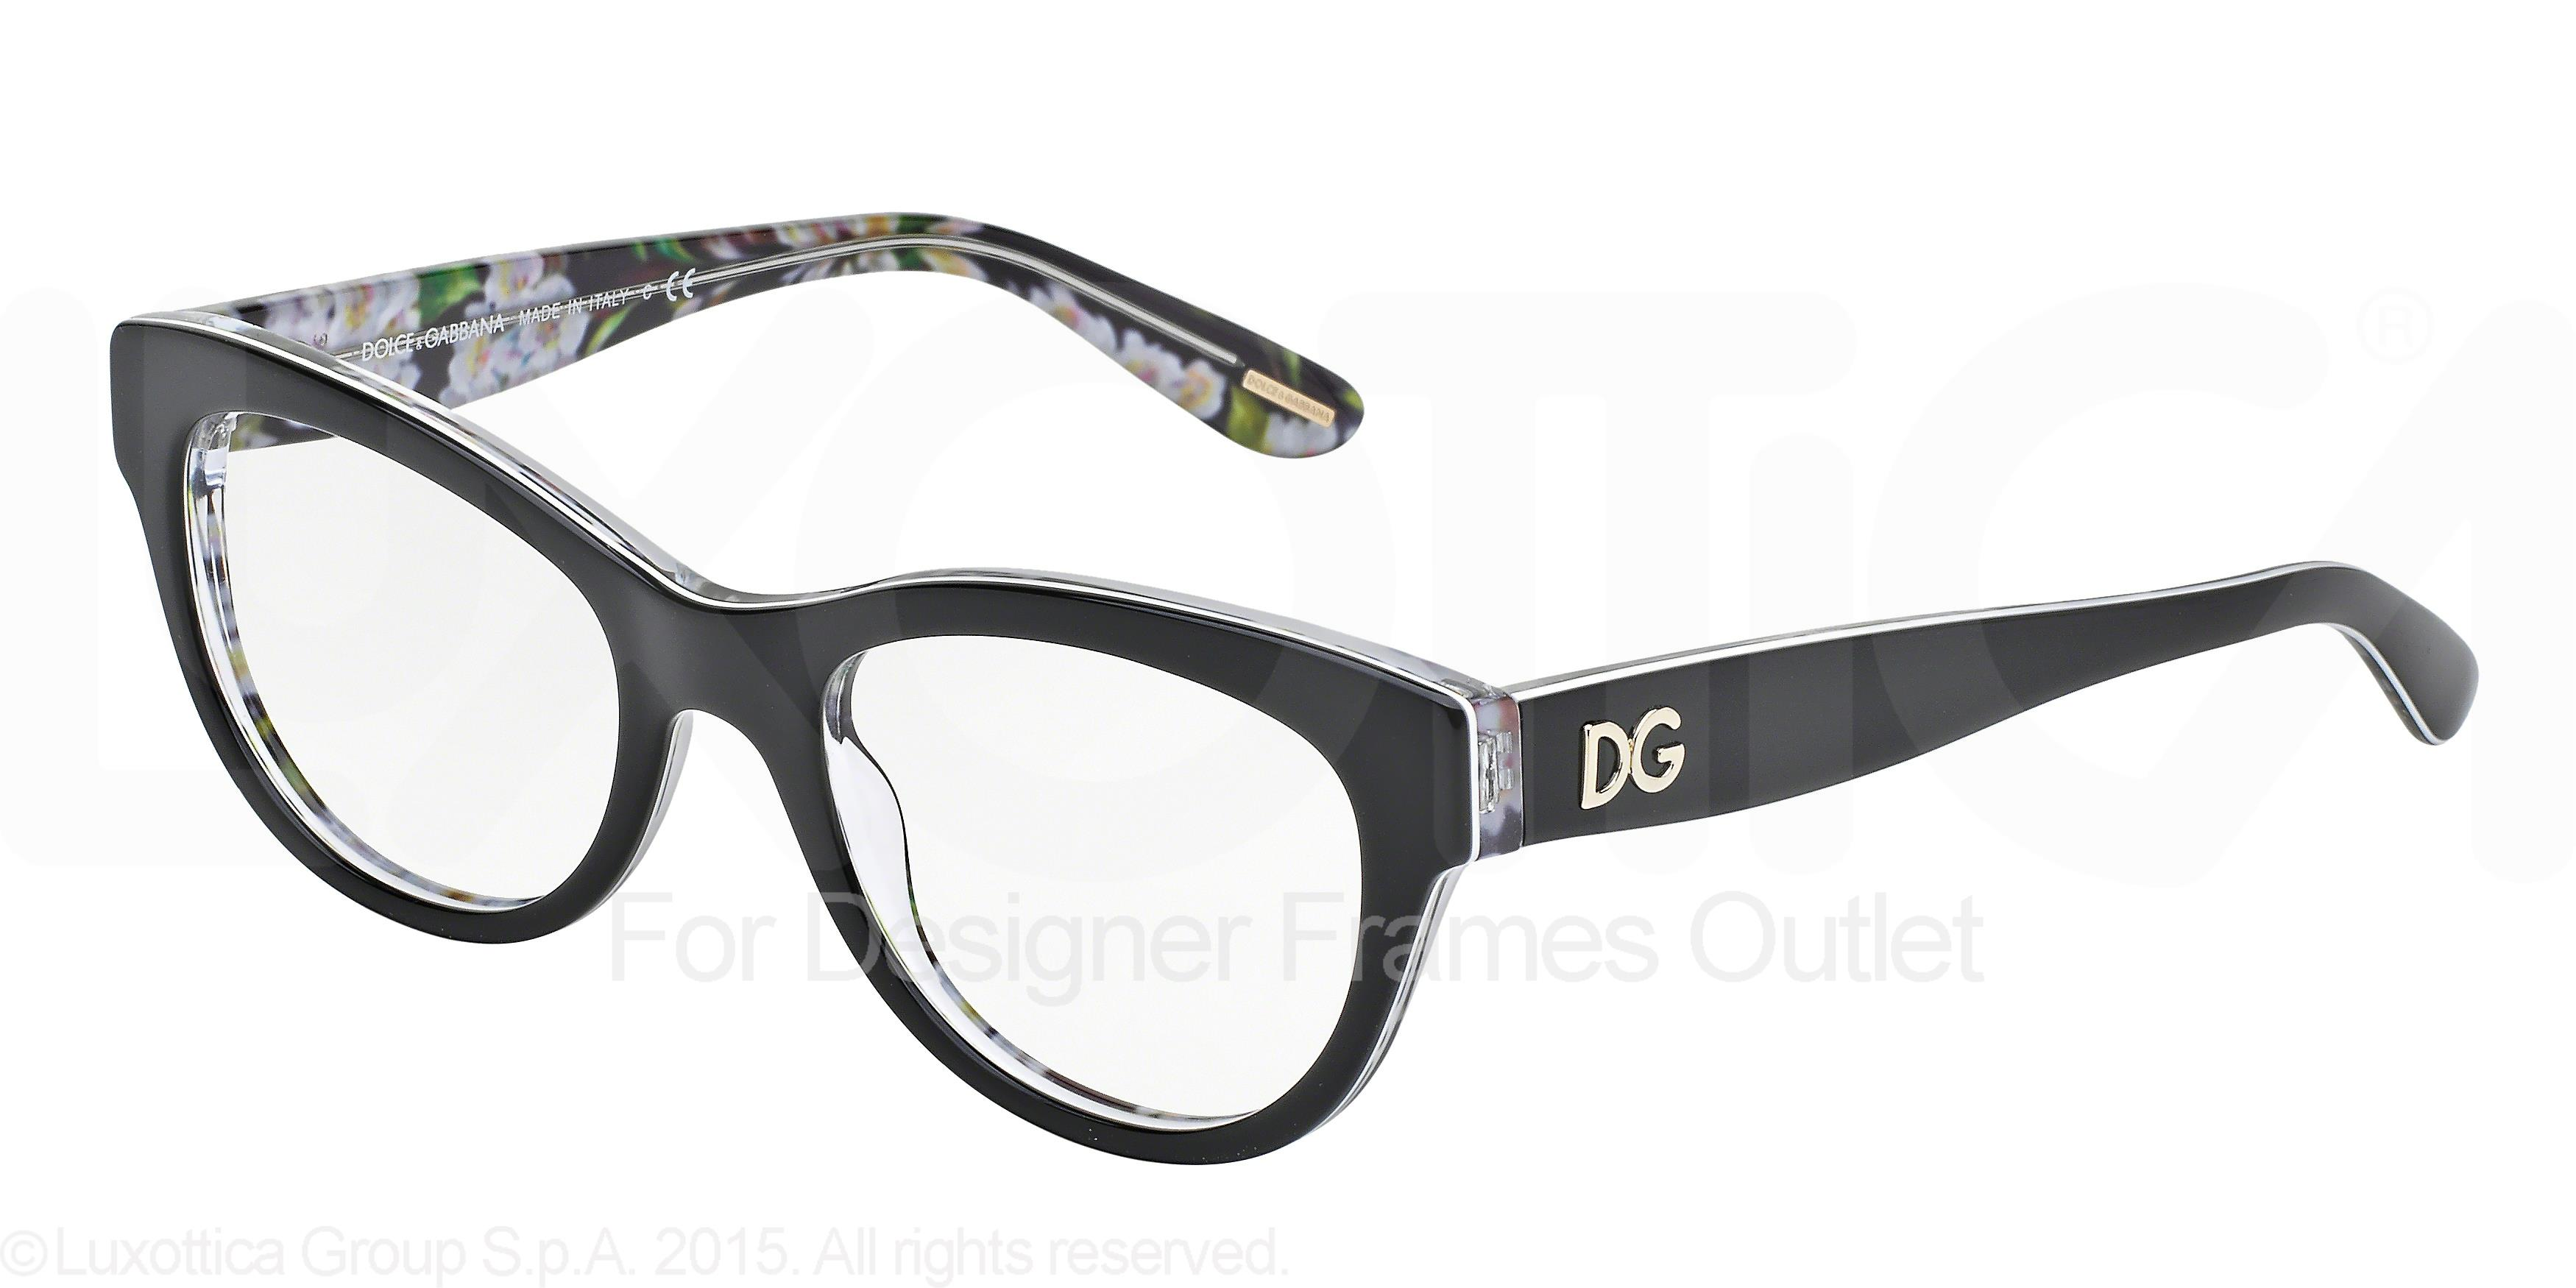 ffb360673d2 Dolce And Gabbana Eyeglasses Price